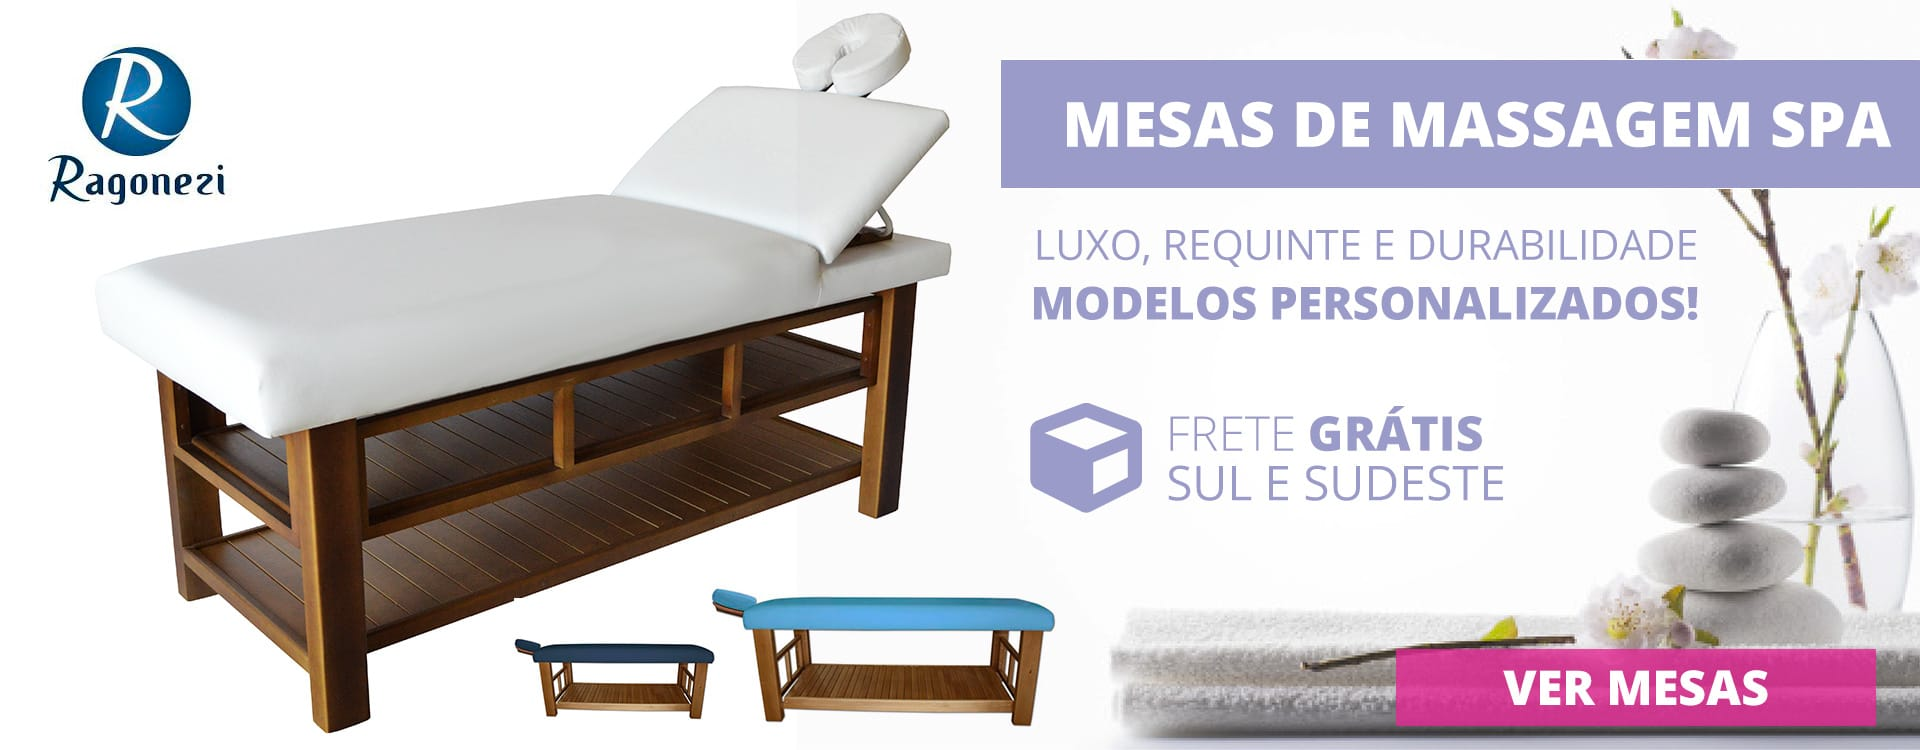 Mesas de Massagem